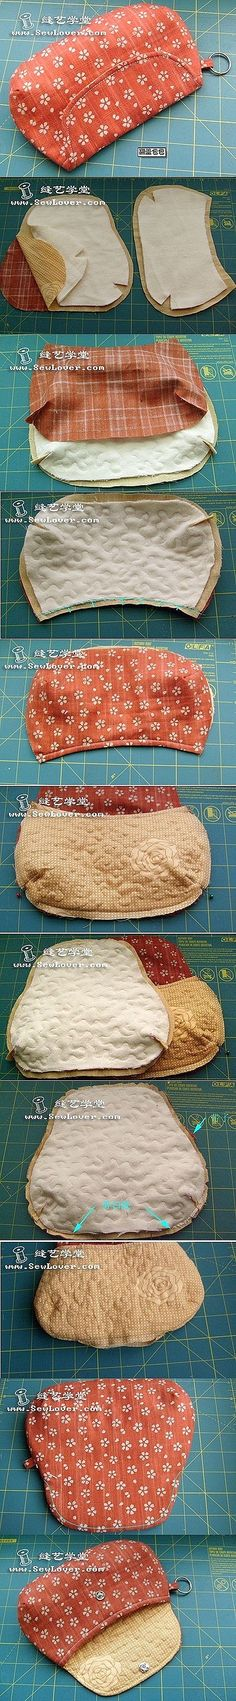 how to sew a clutch or beauty pouch tutorial. tutorial de neceser o bolso de mano DIY - name brand purses on sale, inexpensive handbags, brown and black purse *ad Sewing Hacks, Sewing Tutorials, Sewing Crafts, Sewing Projects, Purse Patterns, Sewing Patterns, Sacs Tote Bags, Diy Sac, Diy Purse